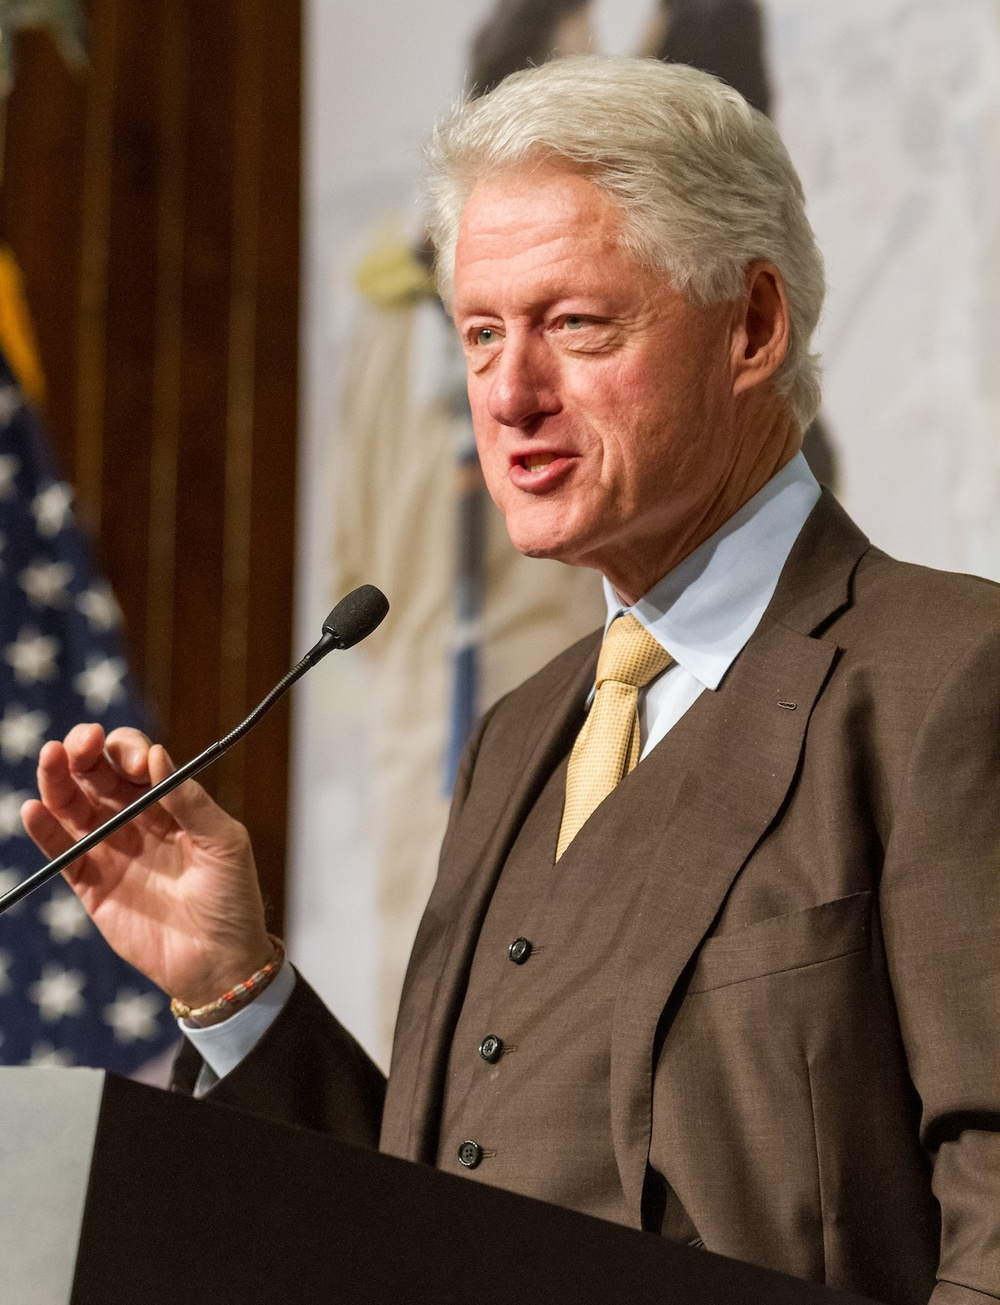 Bill Clinton in February 2013. Credit: U.S. Department of Labor.